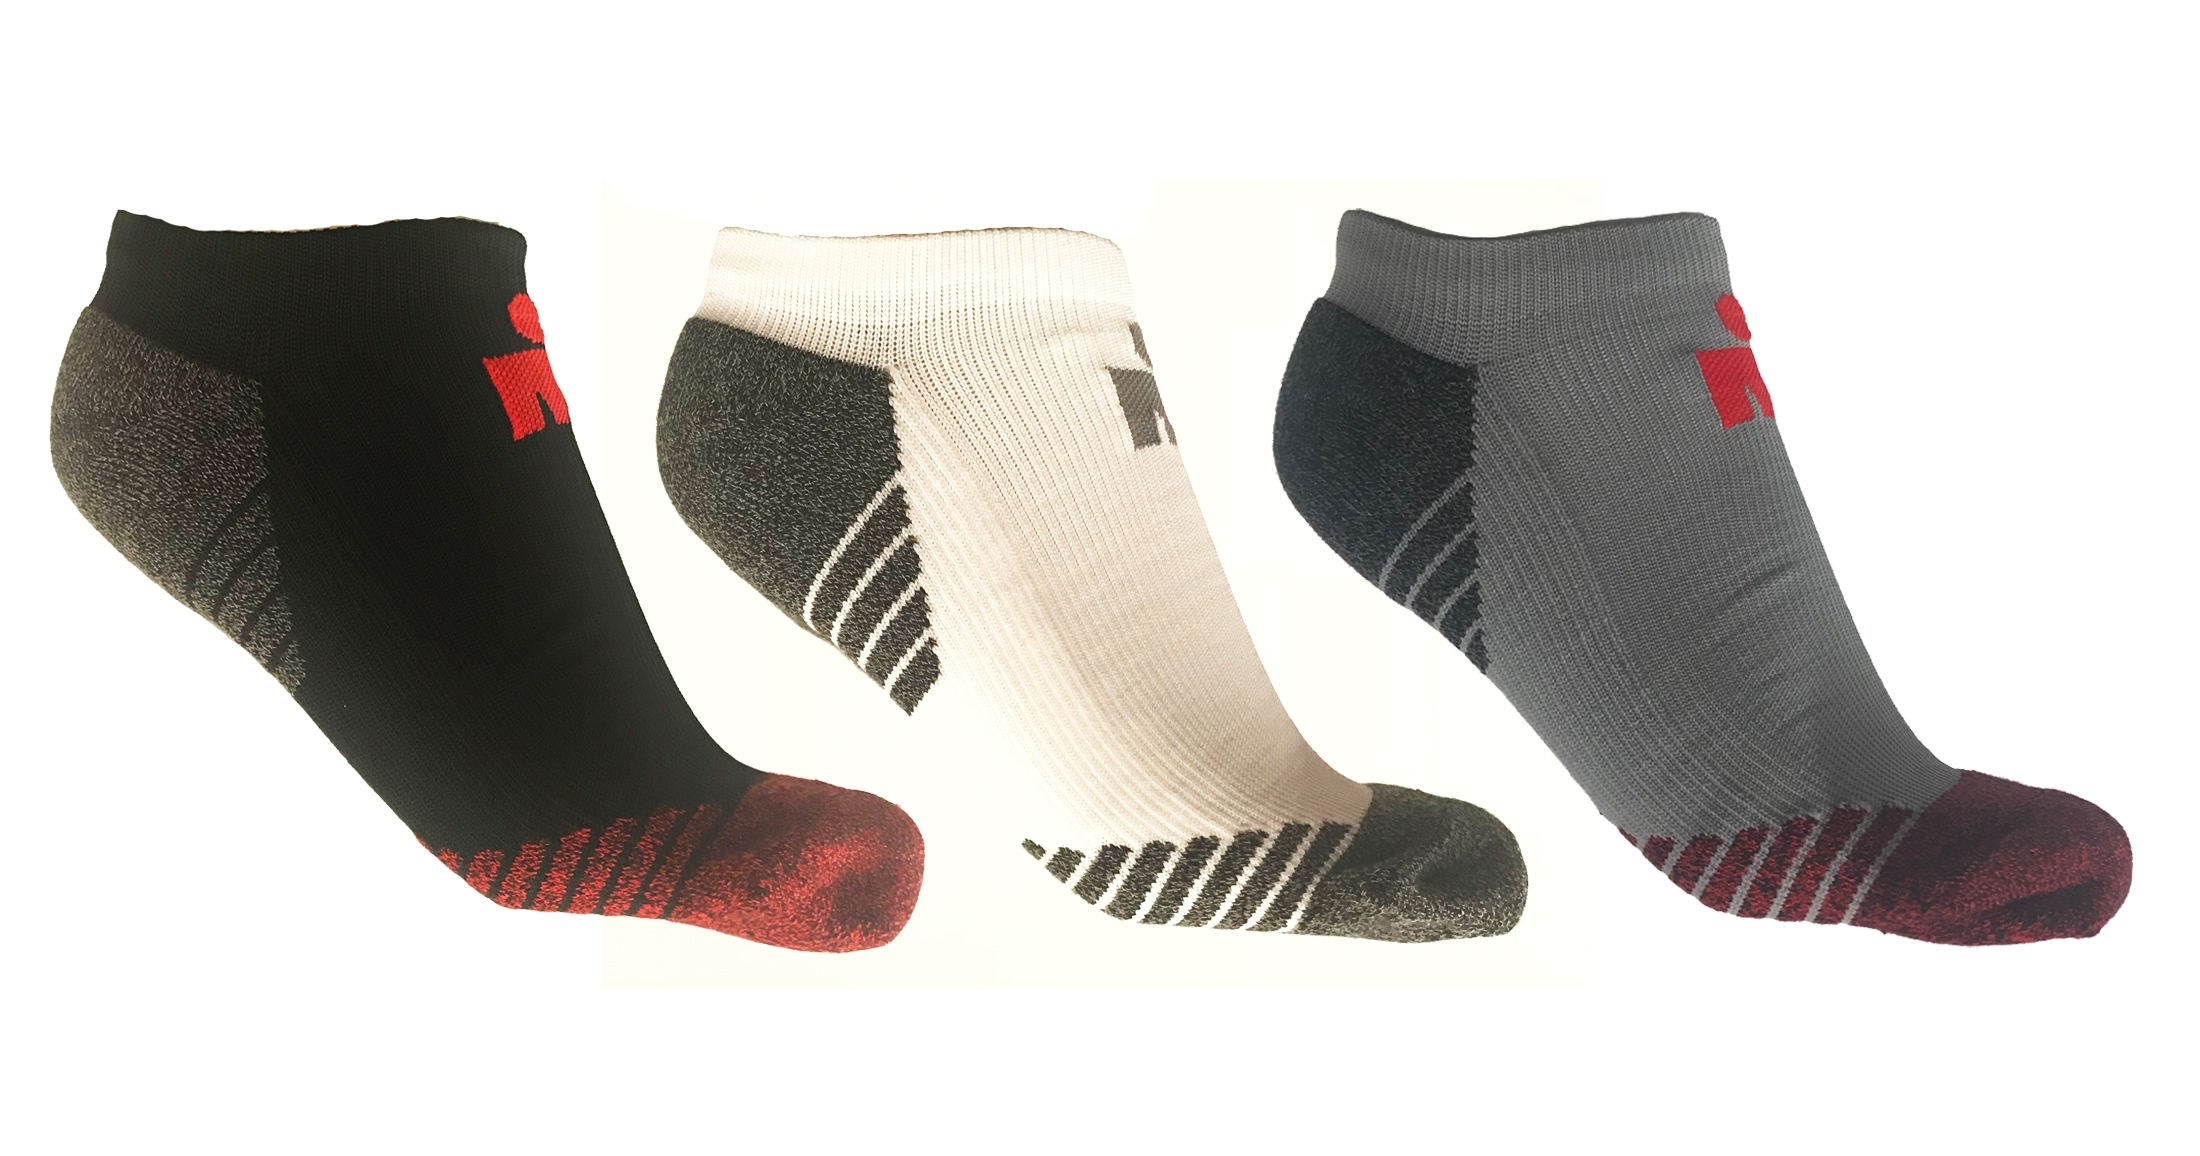 IRONMAN PR No Show Run Sock - 3 Pack